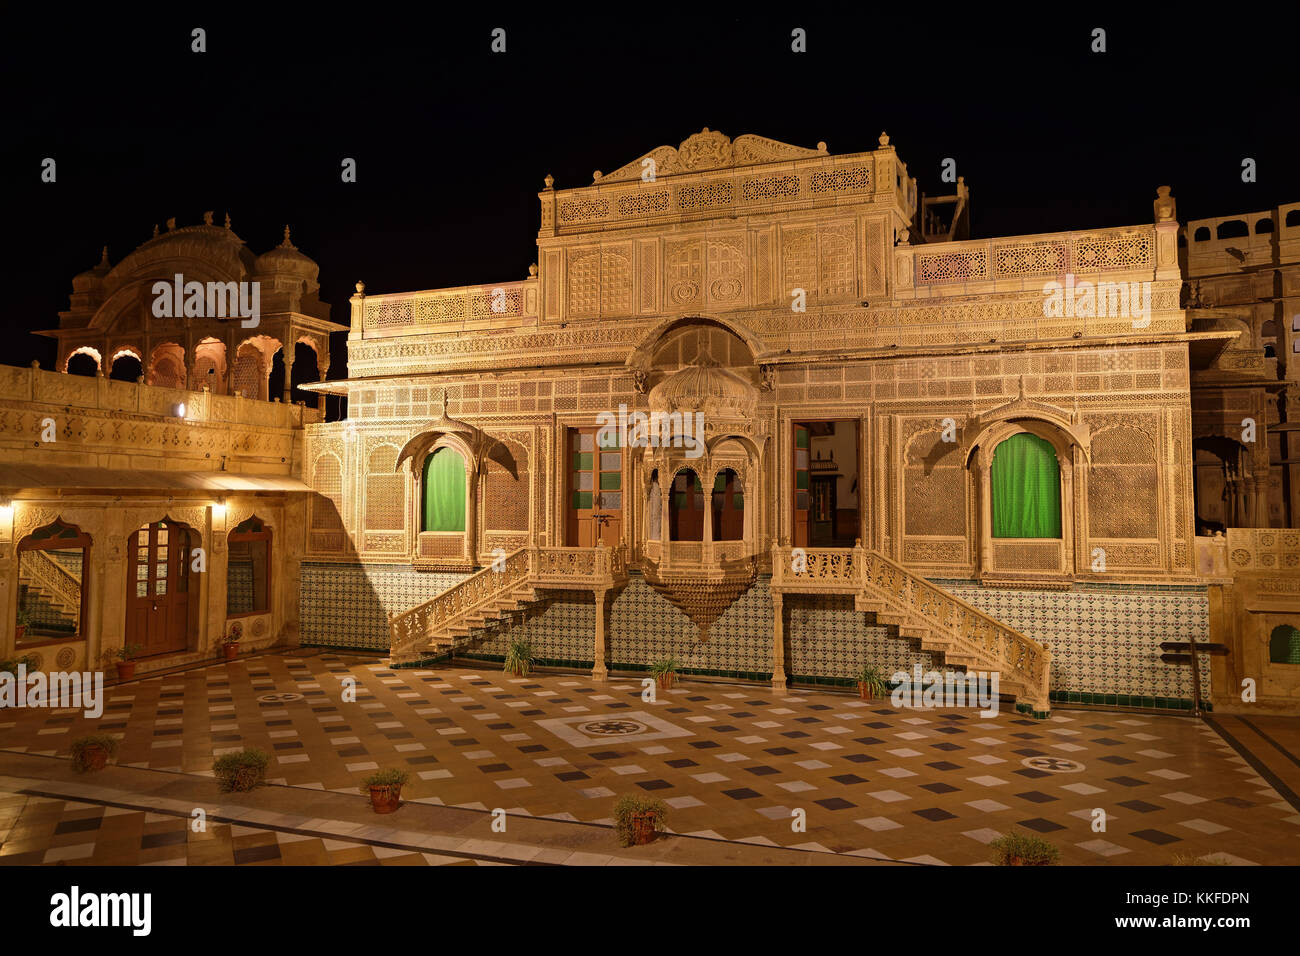 JAISALMER, INDIA, November 1, 2017 : Mandir Palace has been residence of the rulers of Jaisalmer for more than 2 - Stock Image